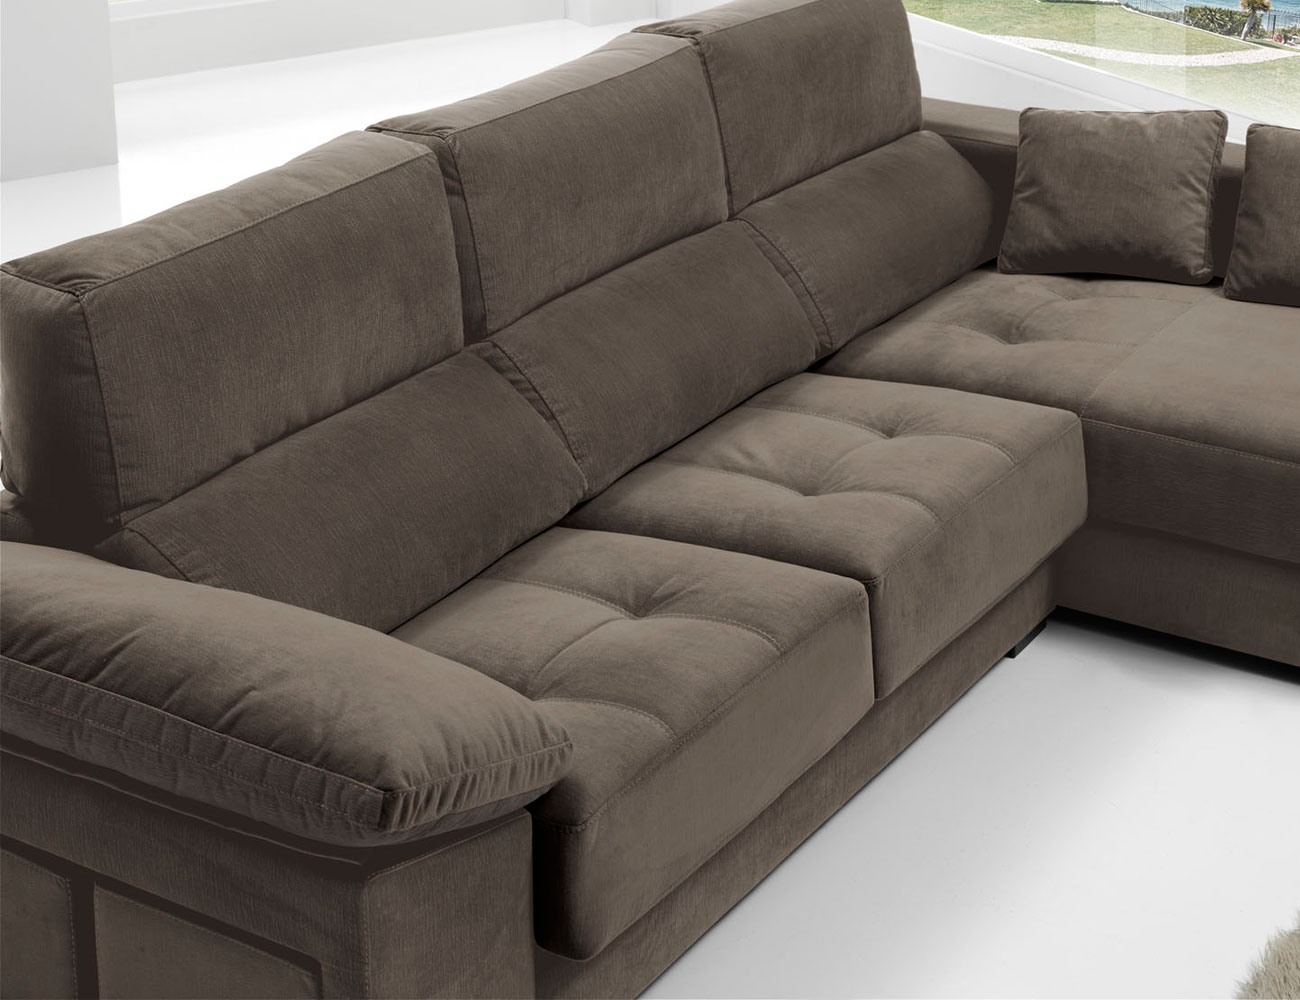 Sofa chaiselongue anti manchas bering pouf 216